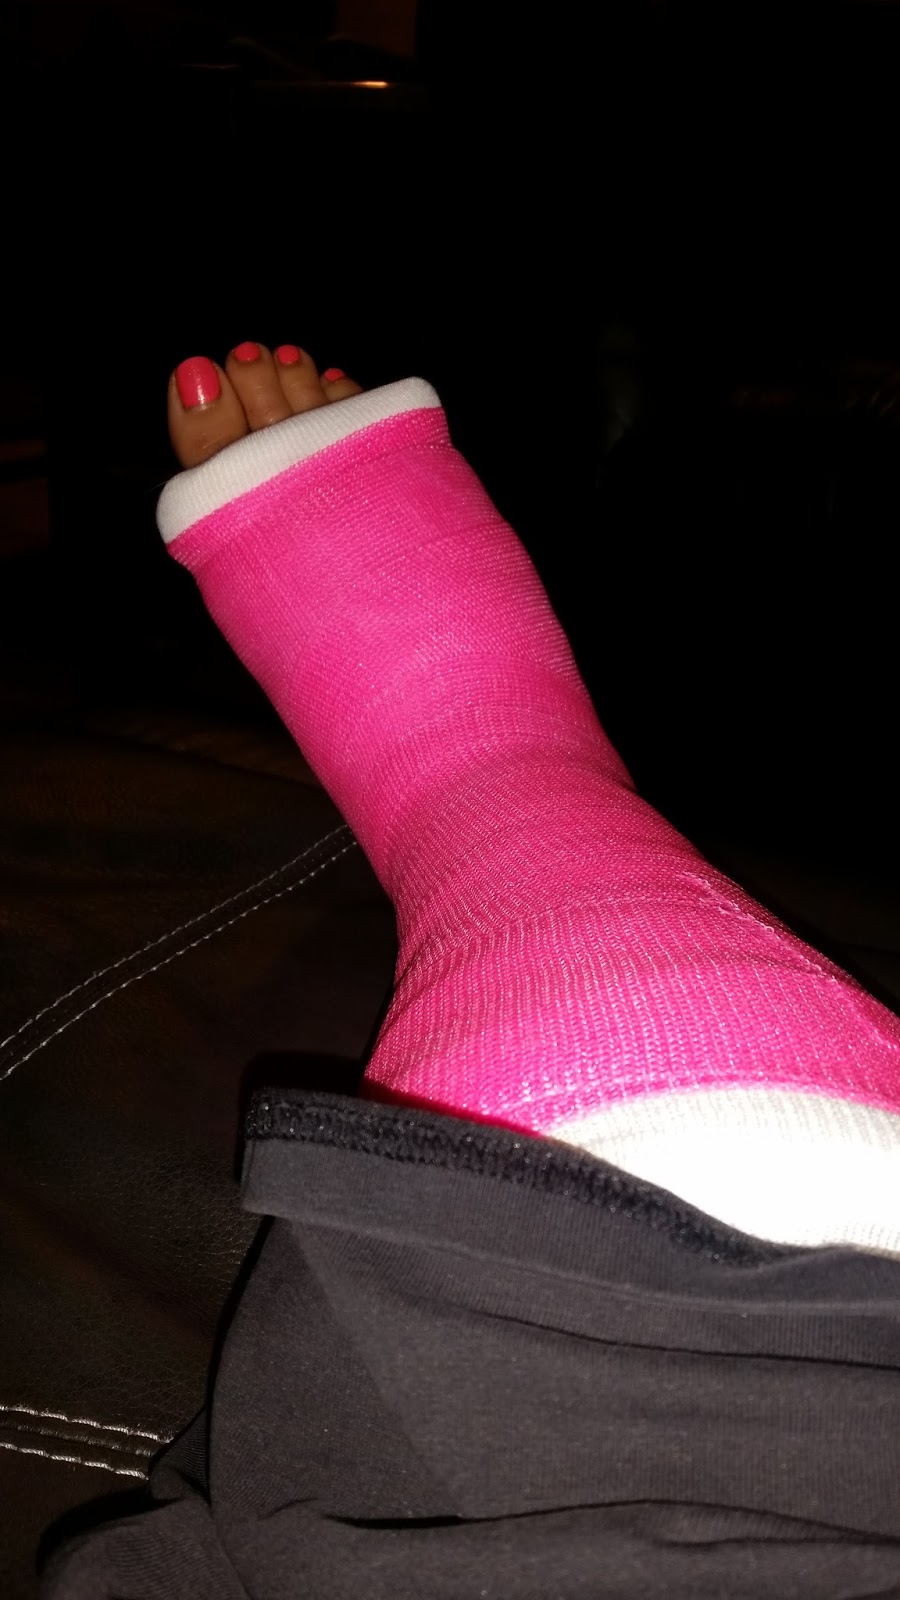 Footnotes: My LisFranc Injury and the Road to Recovery ...